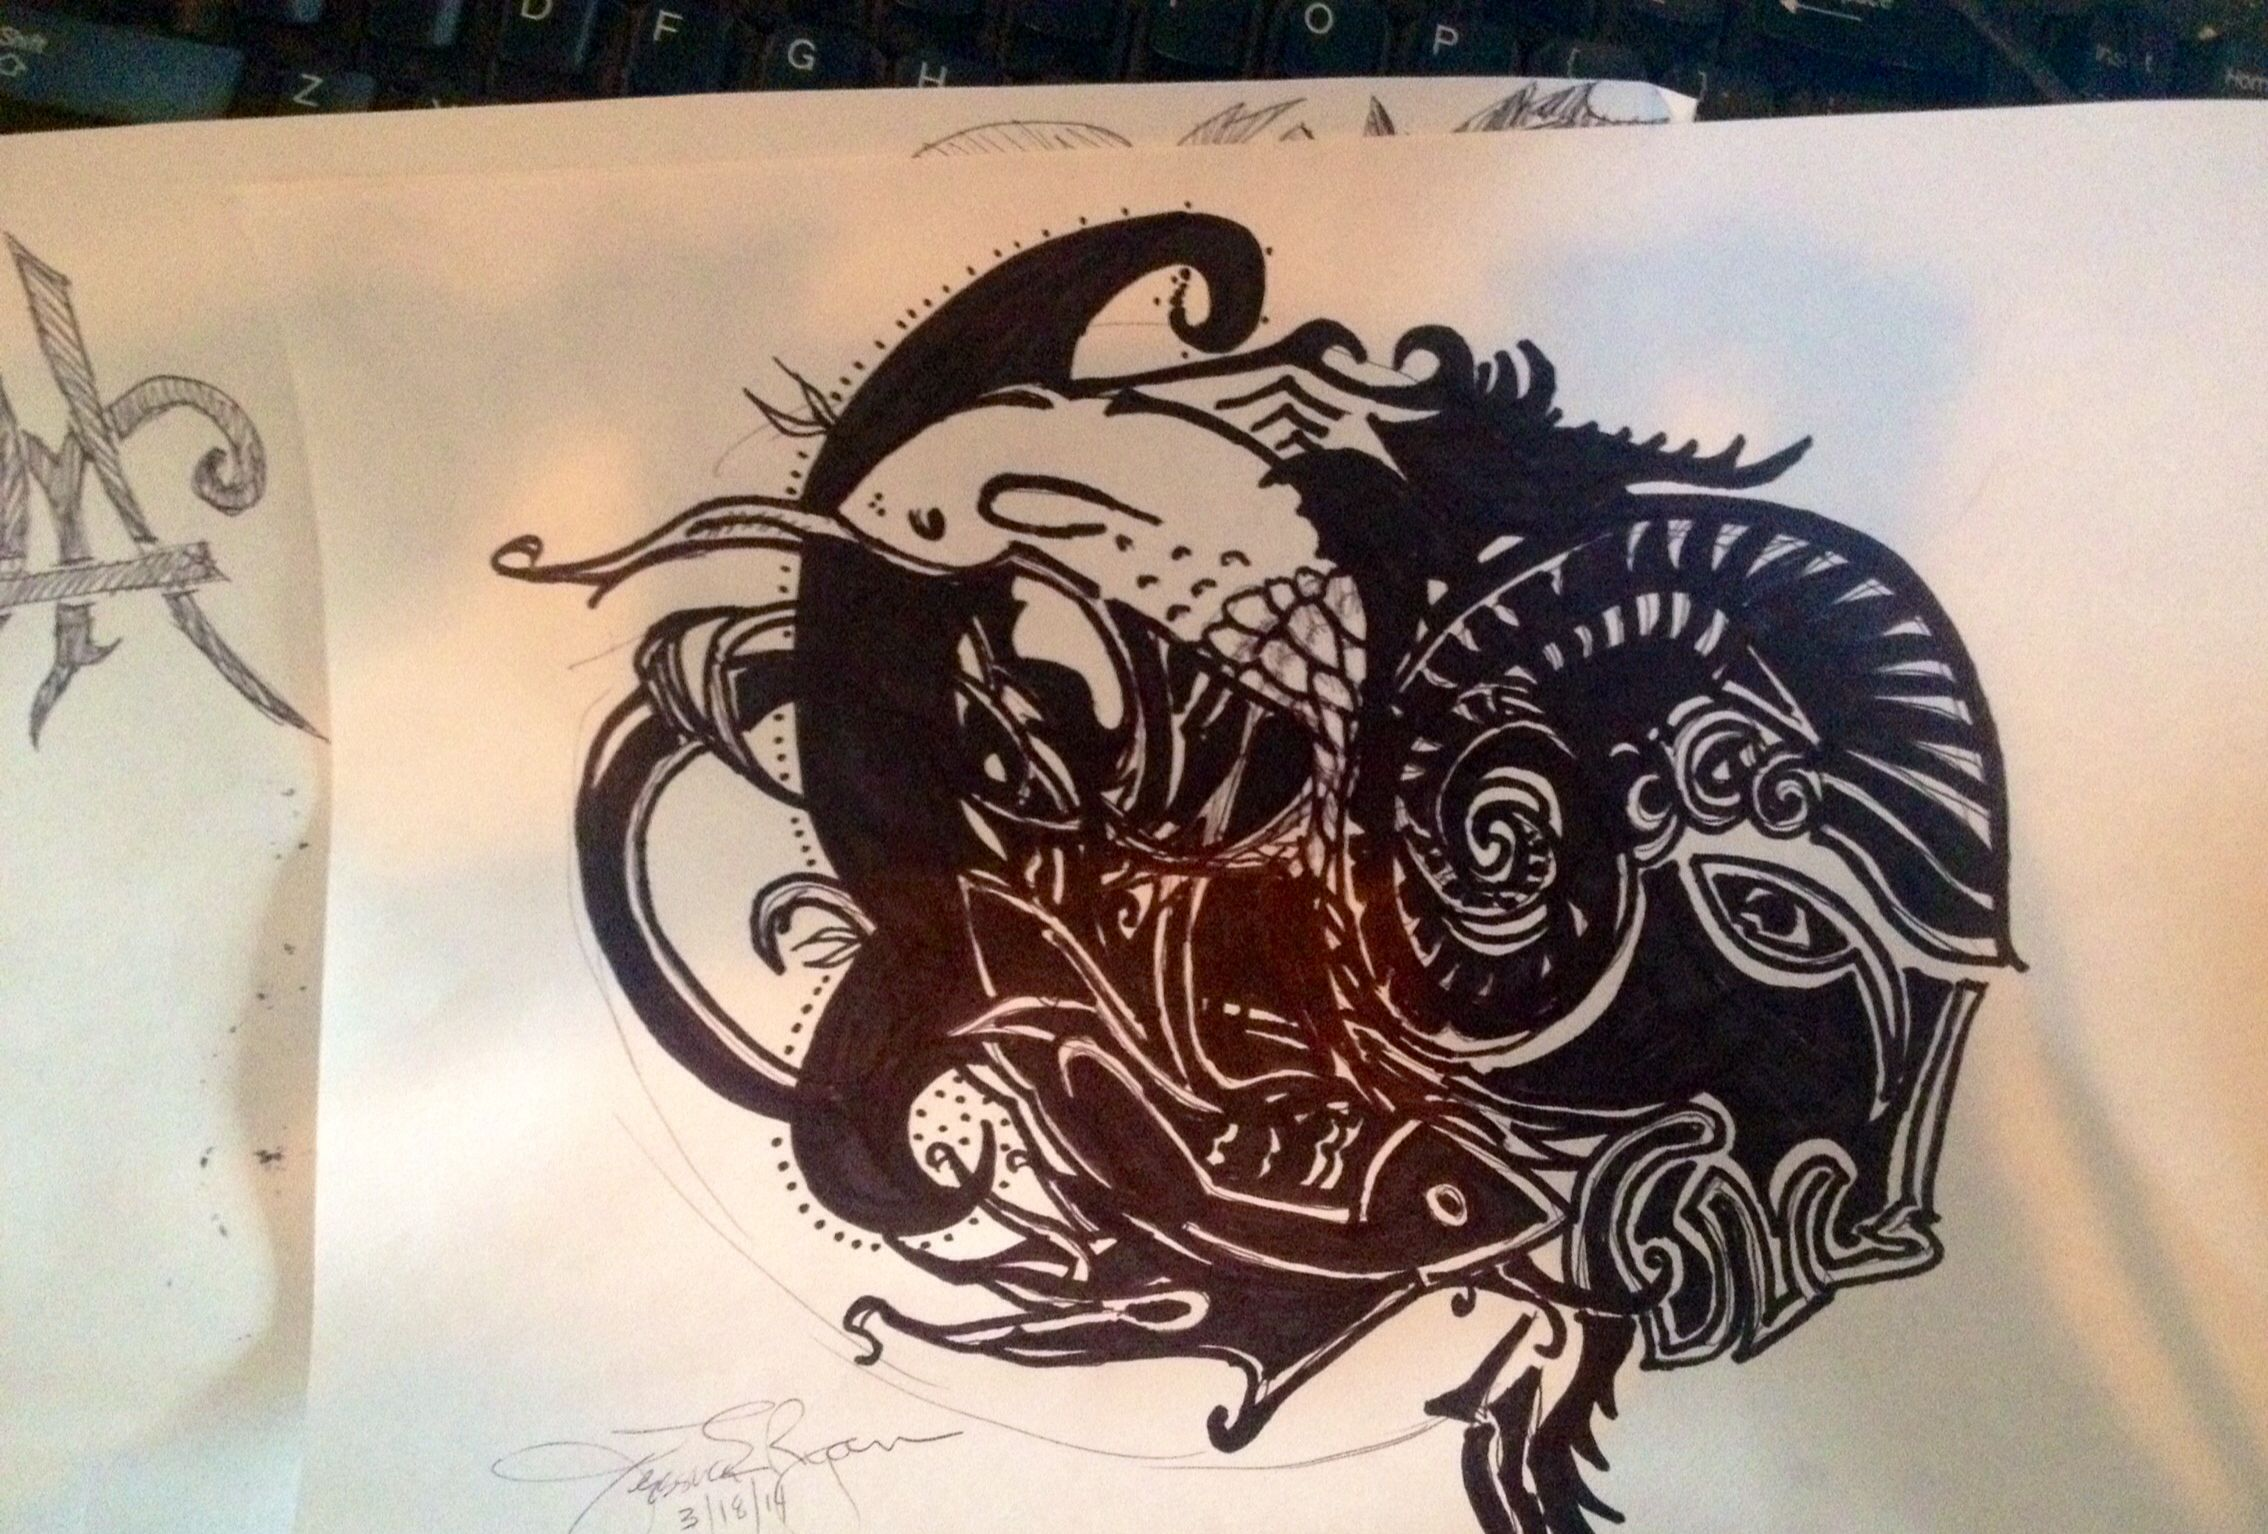 Messing around with ink for ink  My version of the Pisces